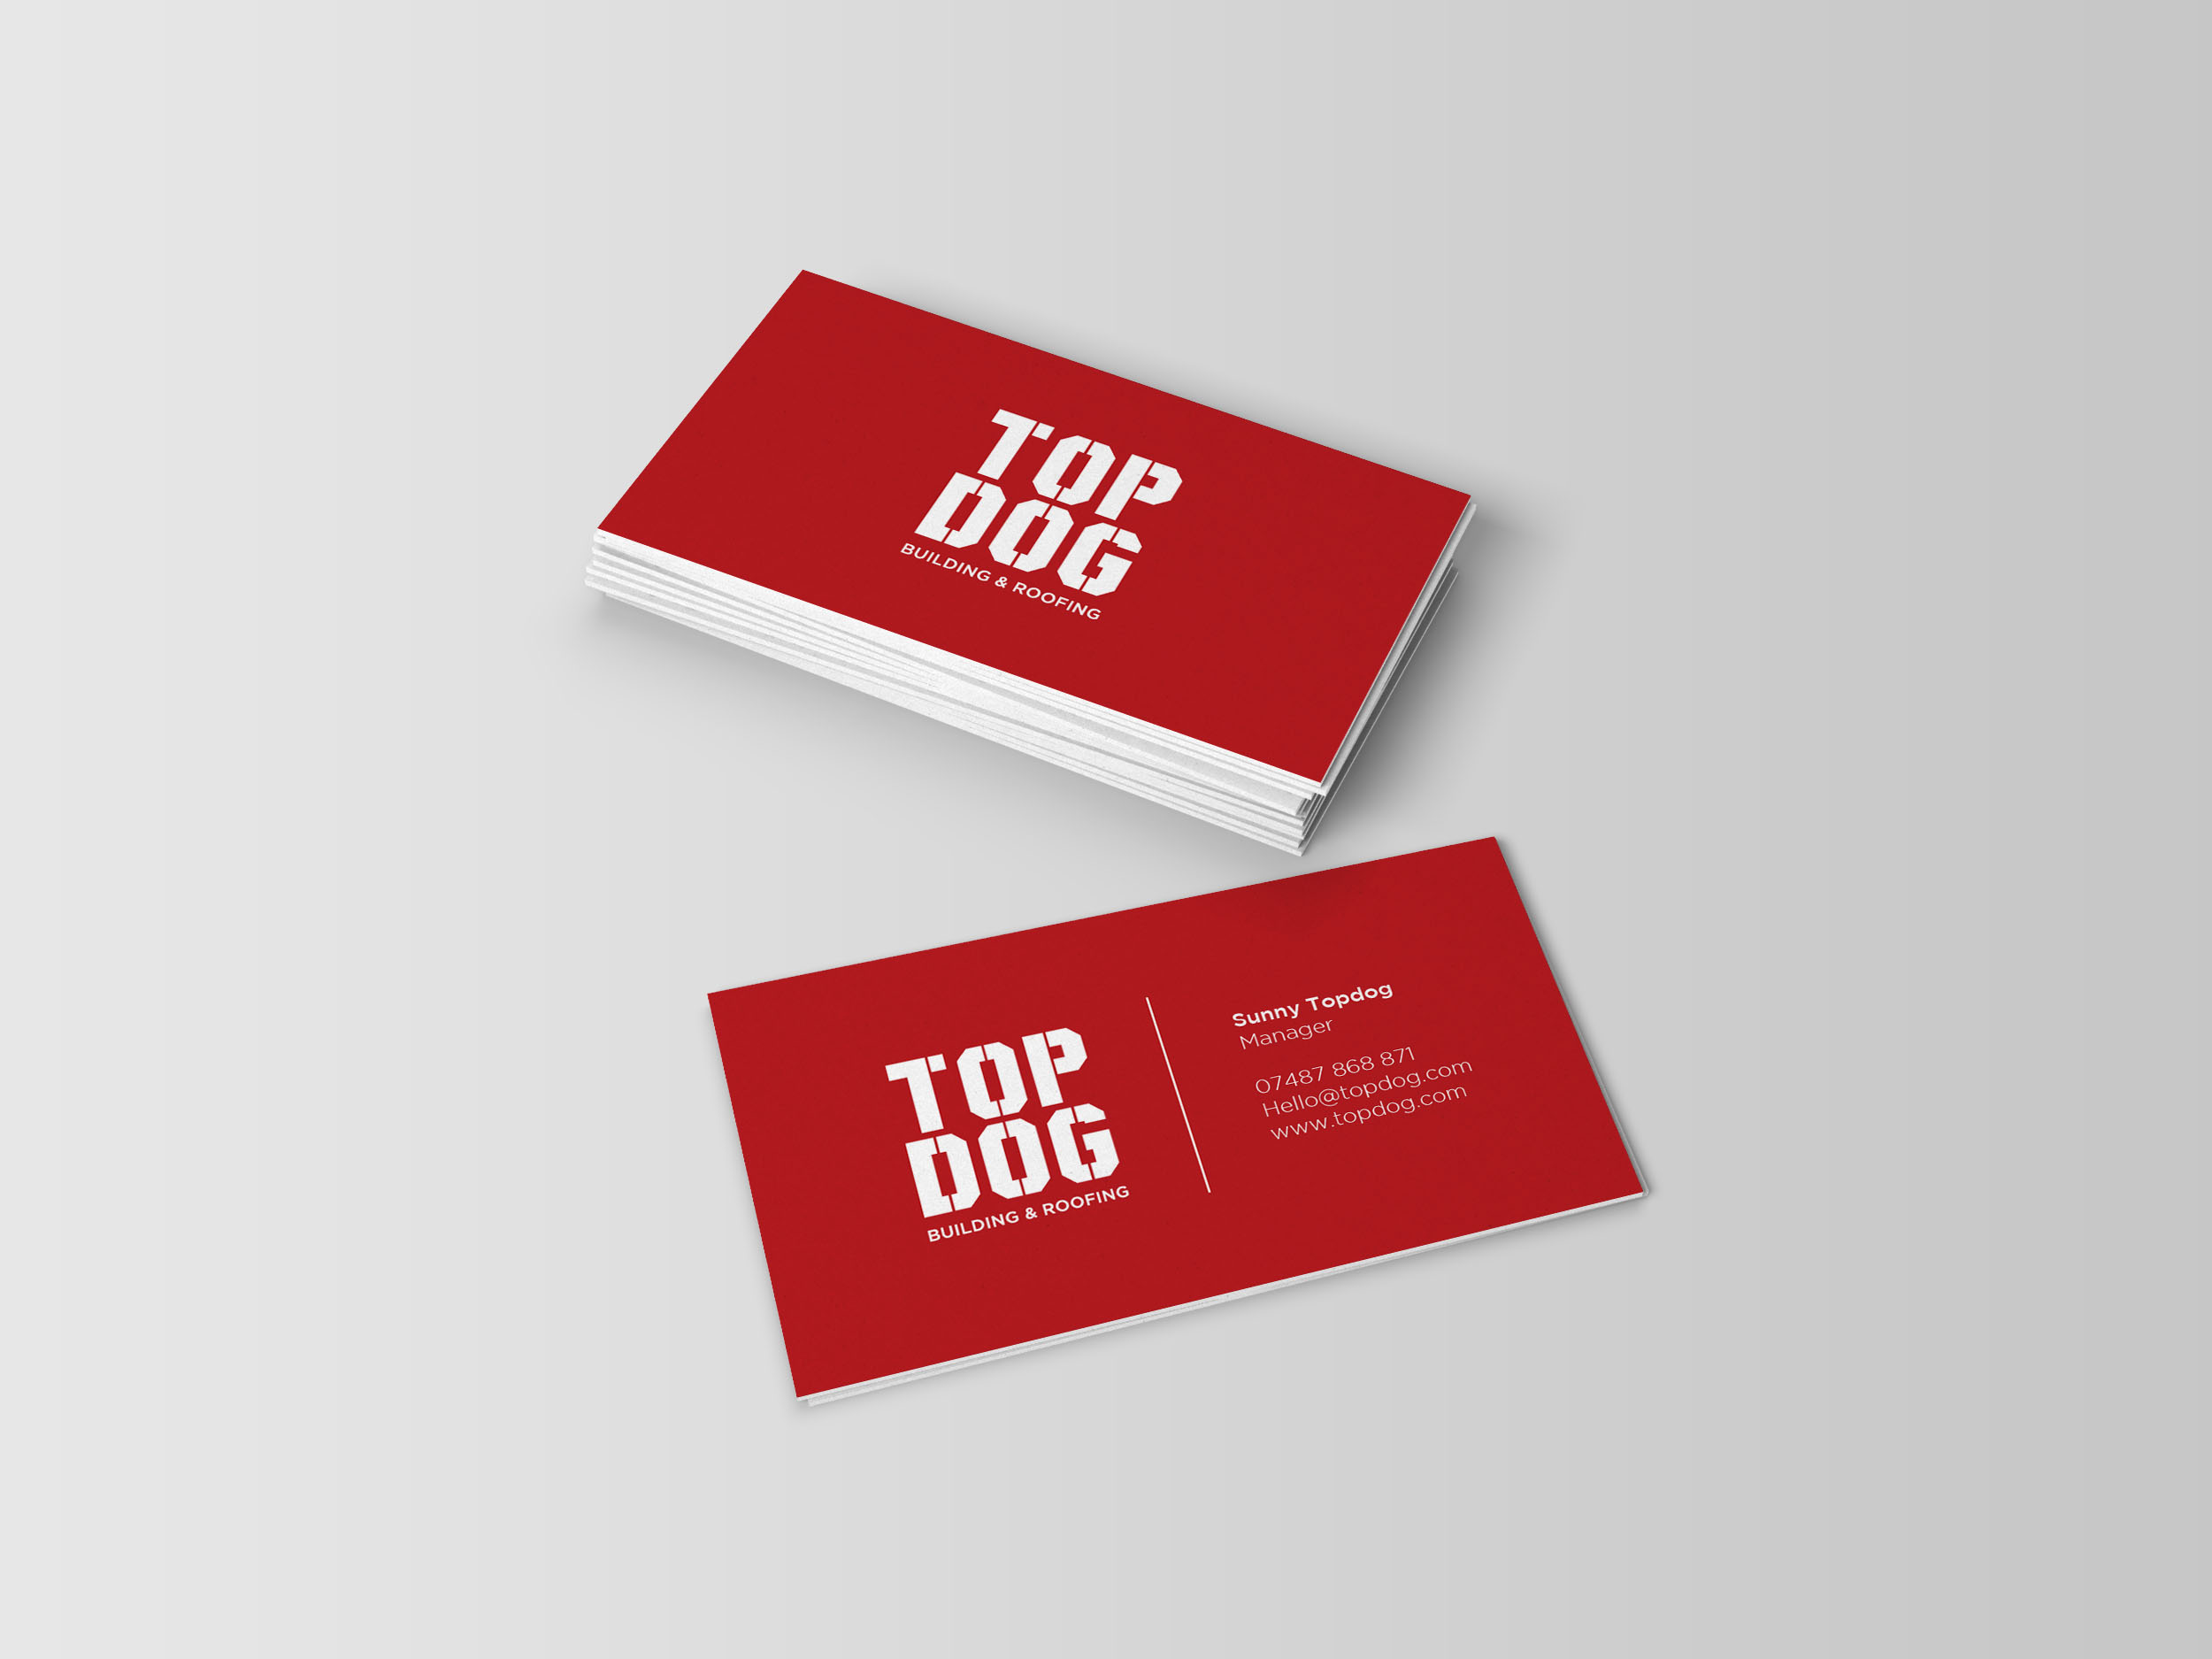 Business card design for building and construction service top dog